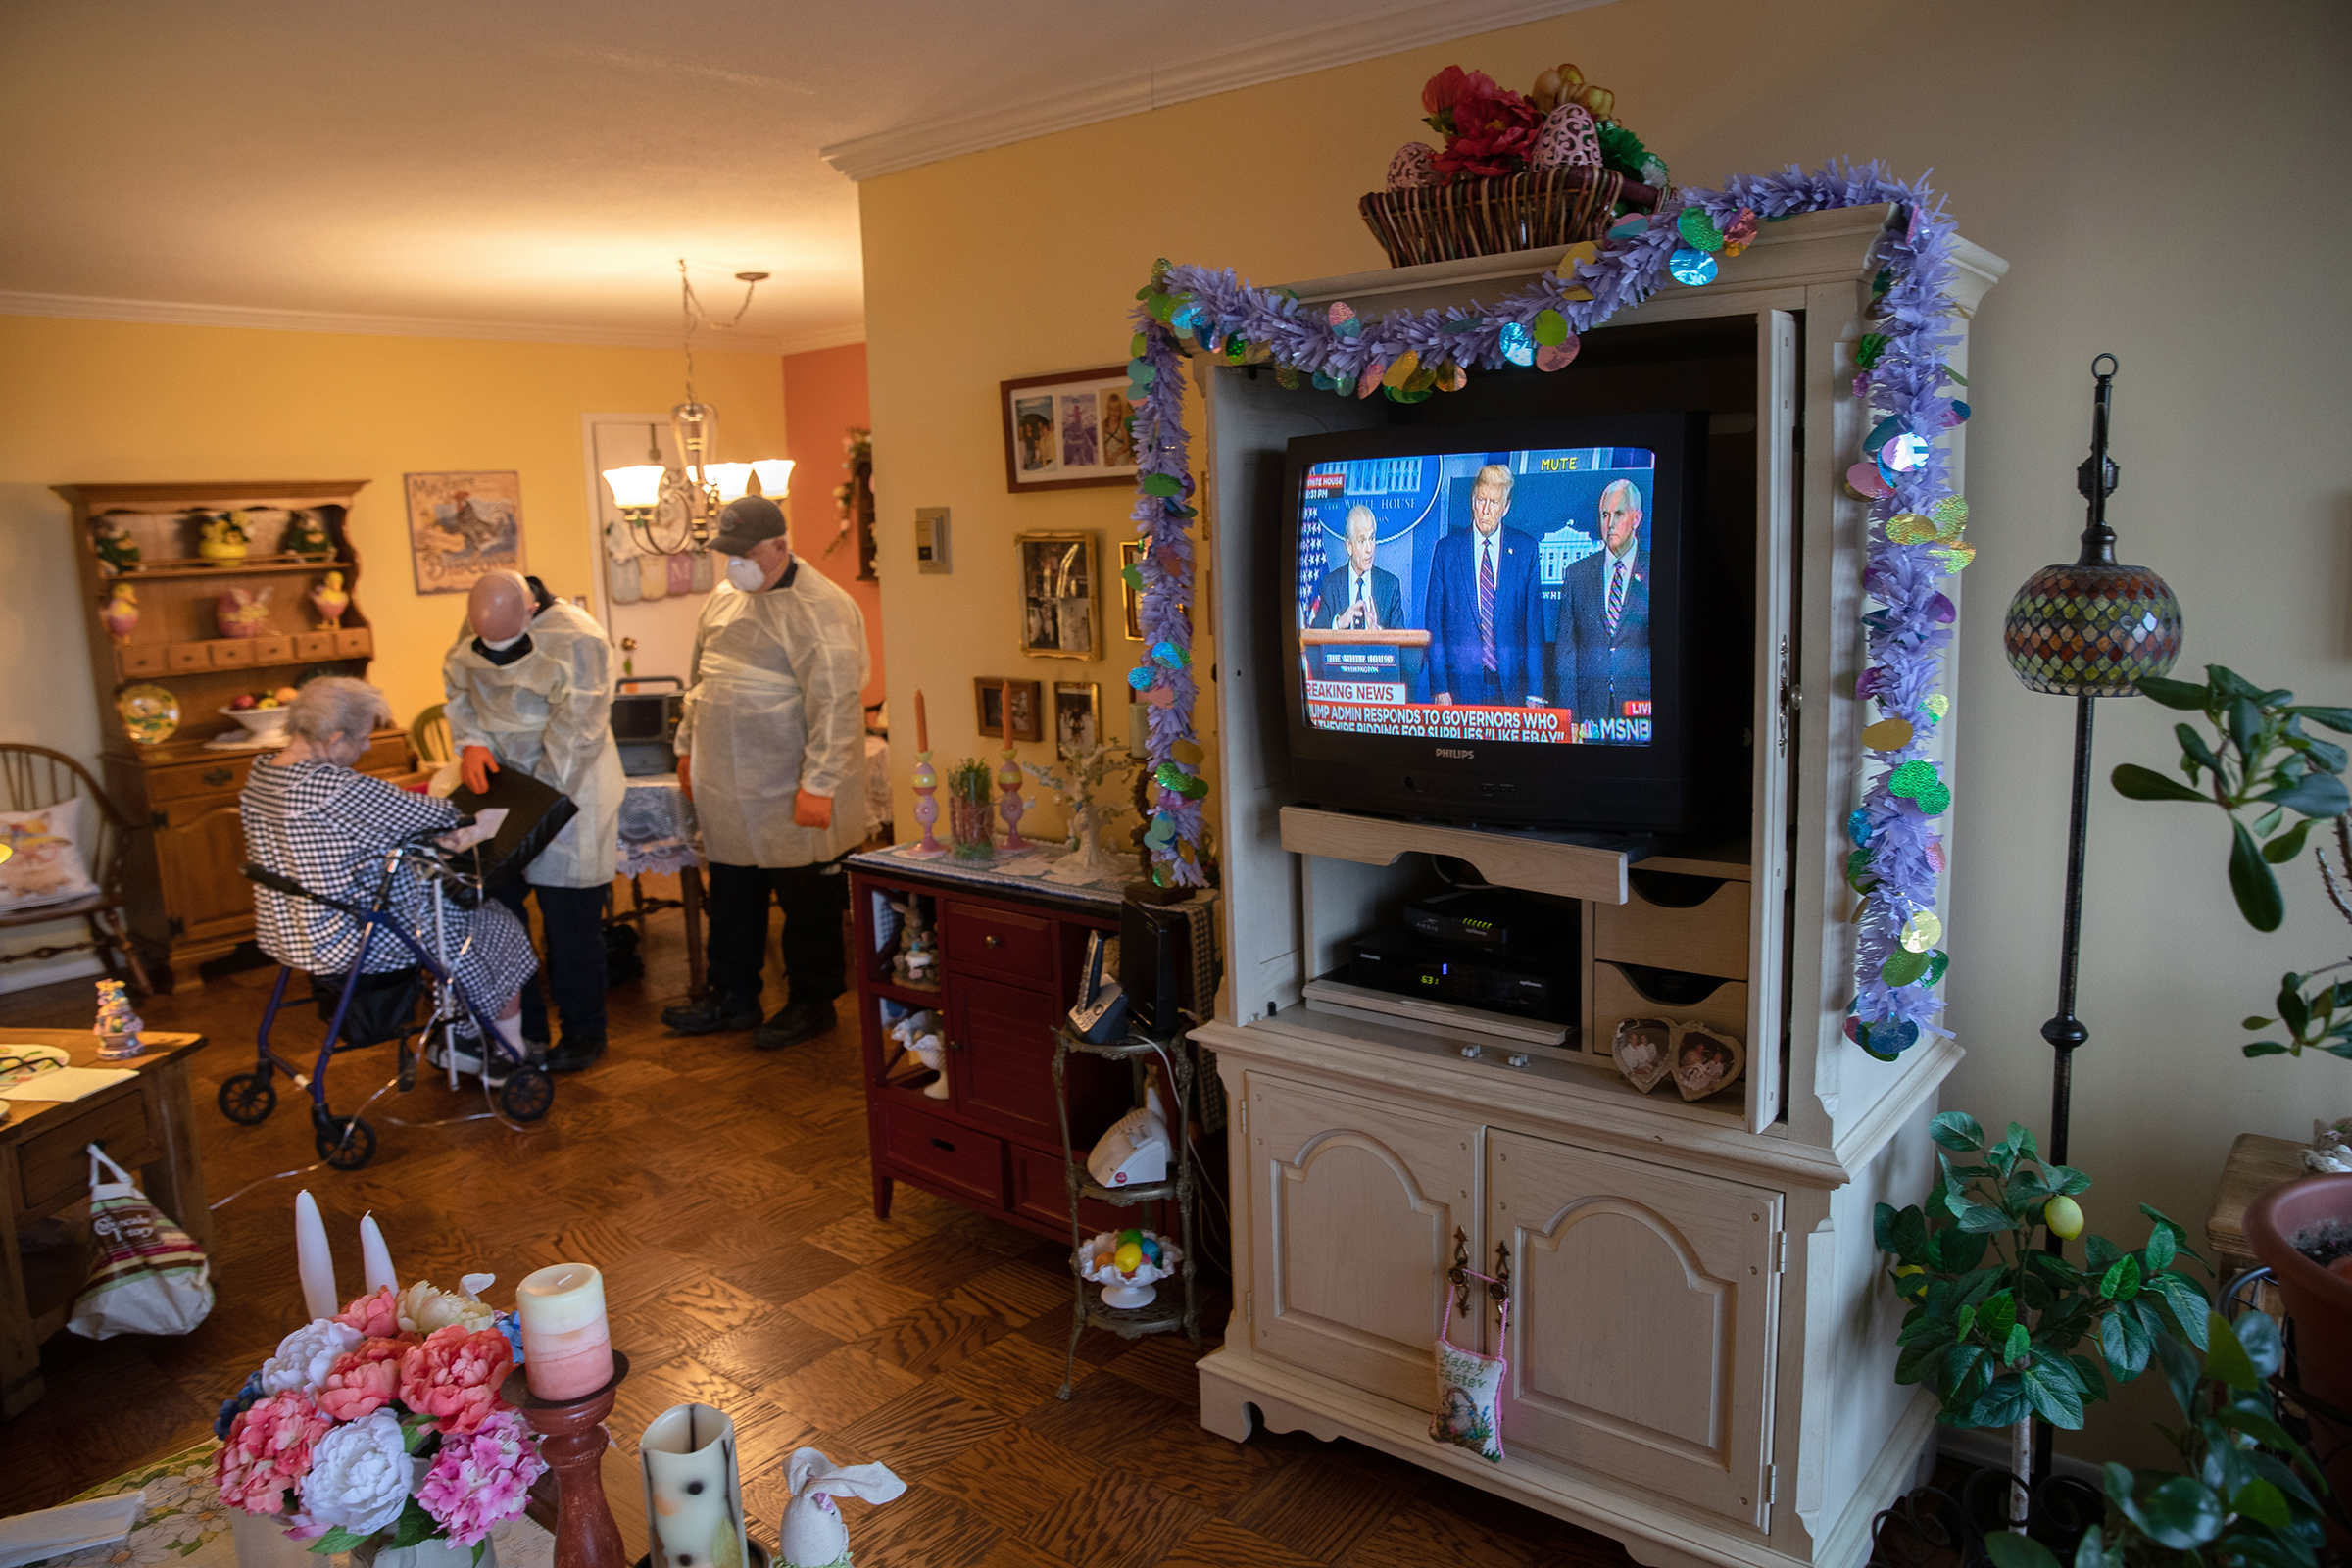 EMS medics wearing personal protective equipment check a woman in her apartment for COVID-19 symptoms during a televised Presidential press conference on April 02 in Stamford, Connecticut.